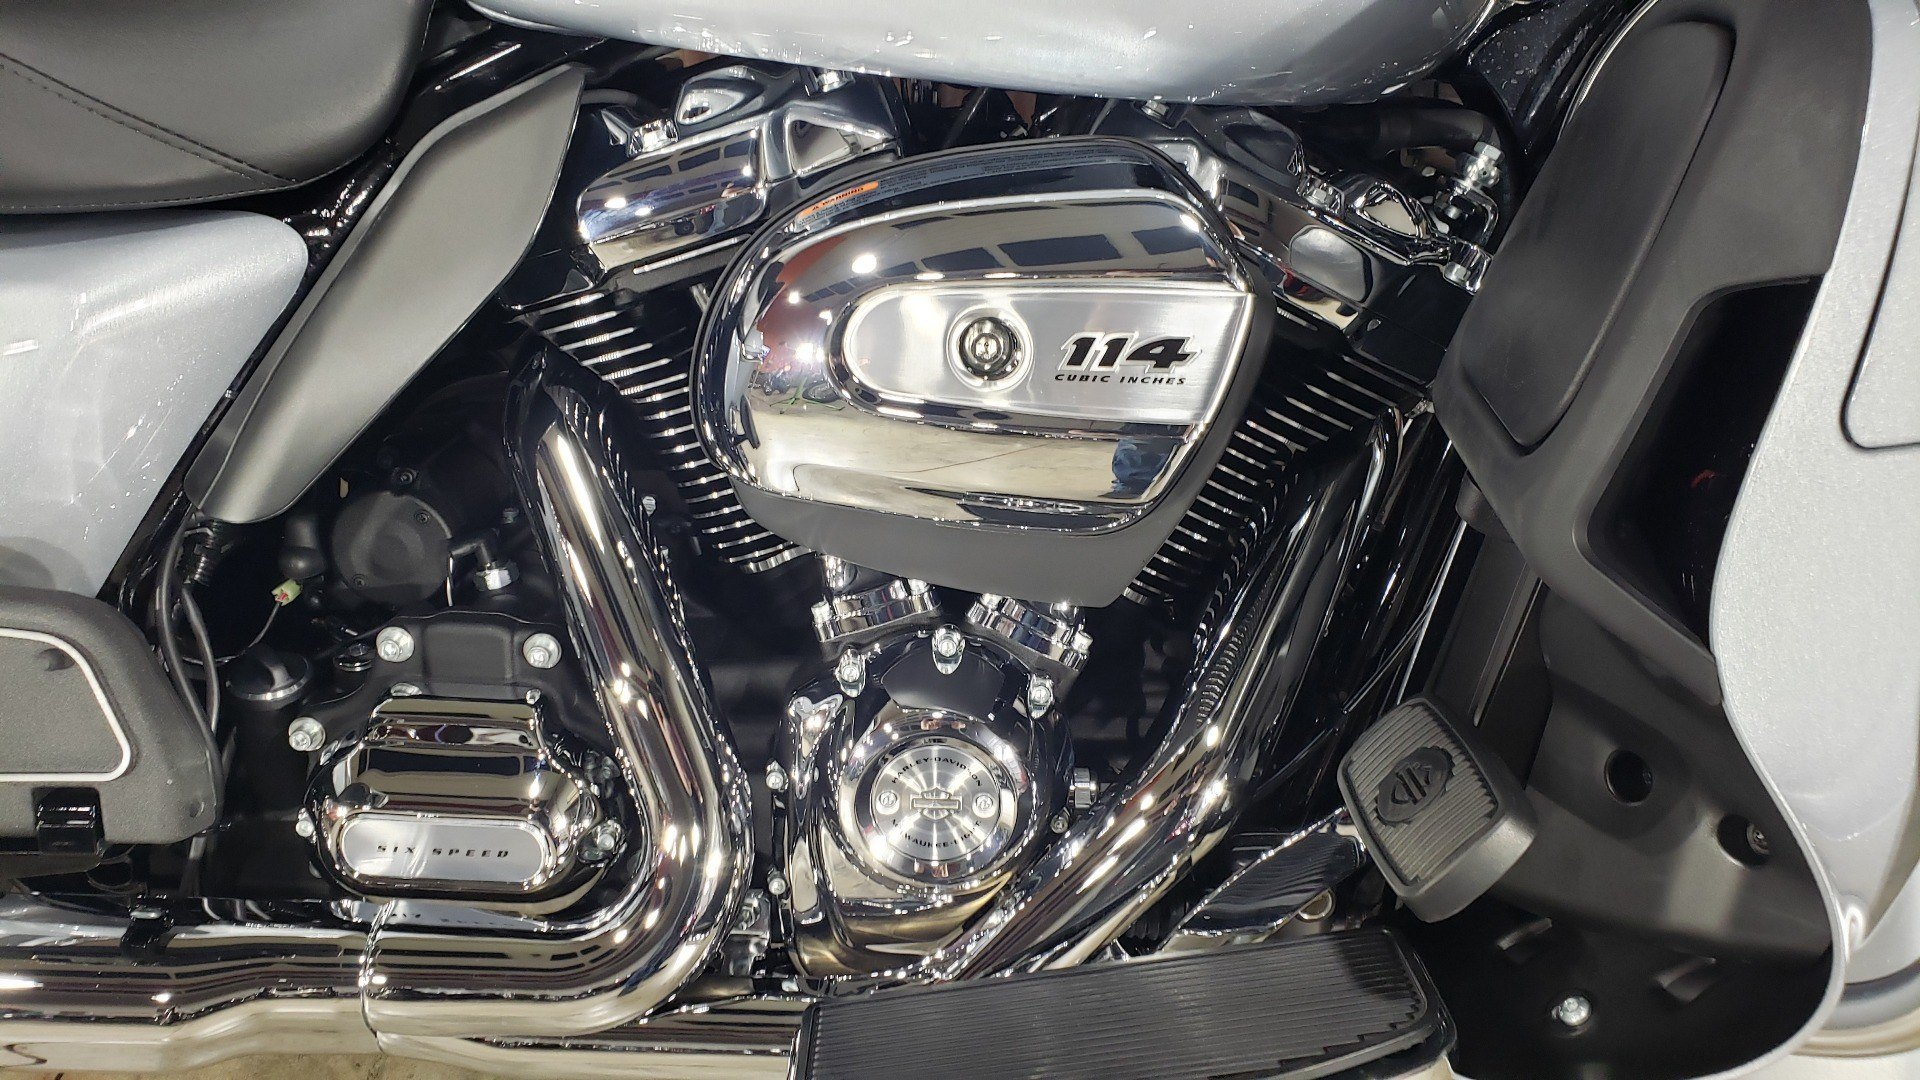 2020 Harley-Davidson Ultra Limited in Chippewa Falls, Wisconsin - Photo 7